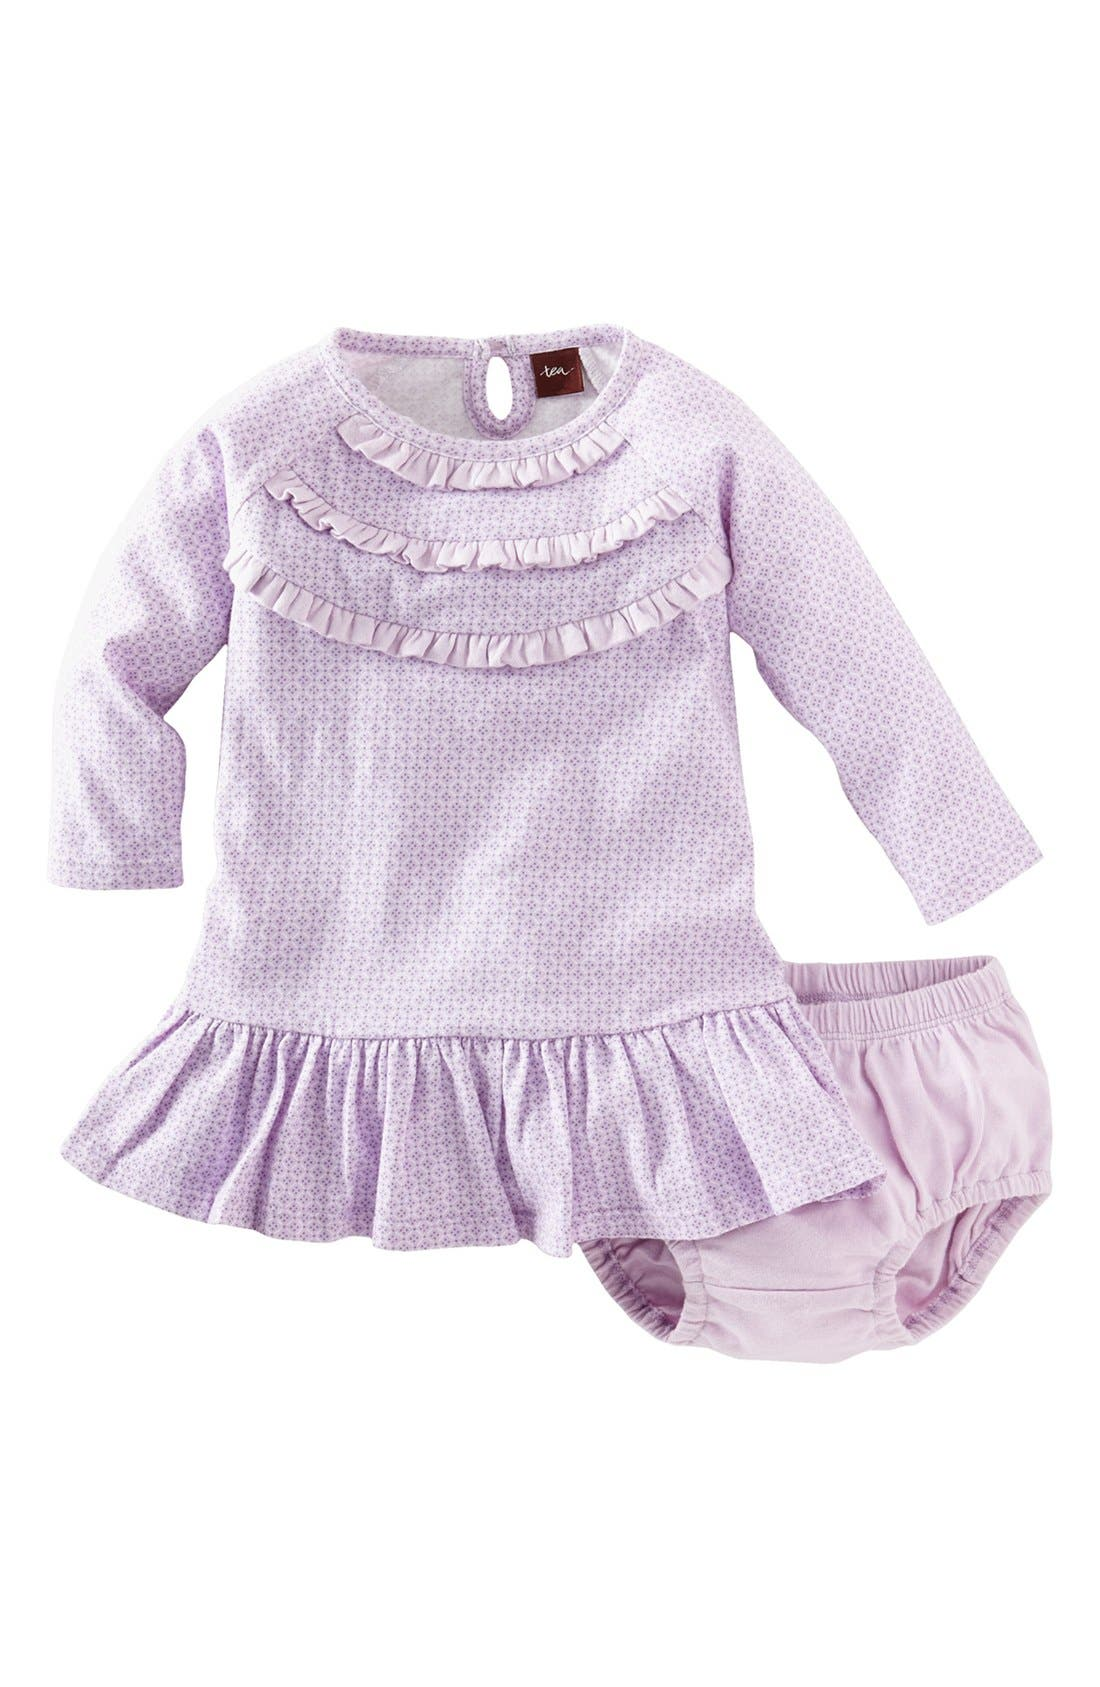 Main Image - Tea Collection 'Diamond' Dress & Bloomers (Baby Girls)